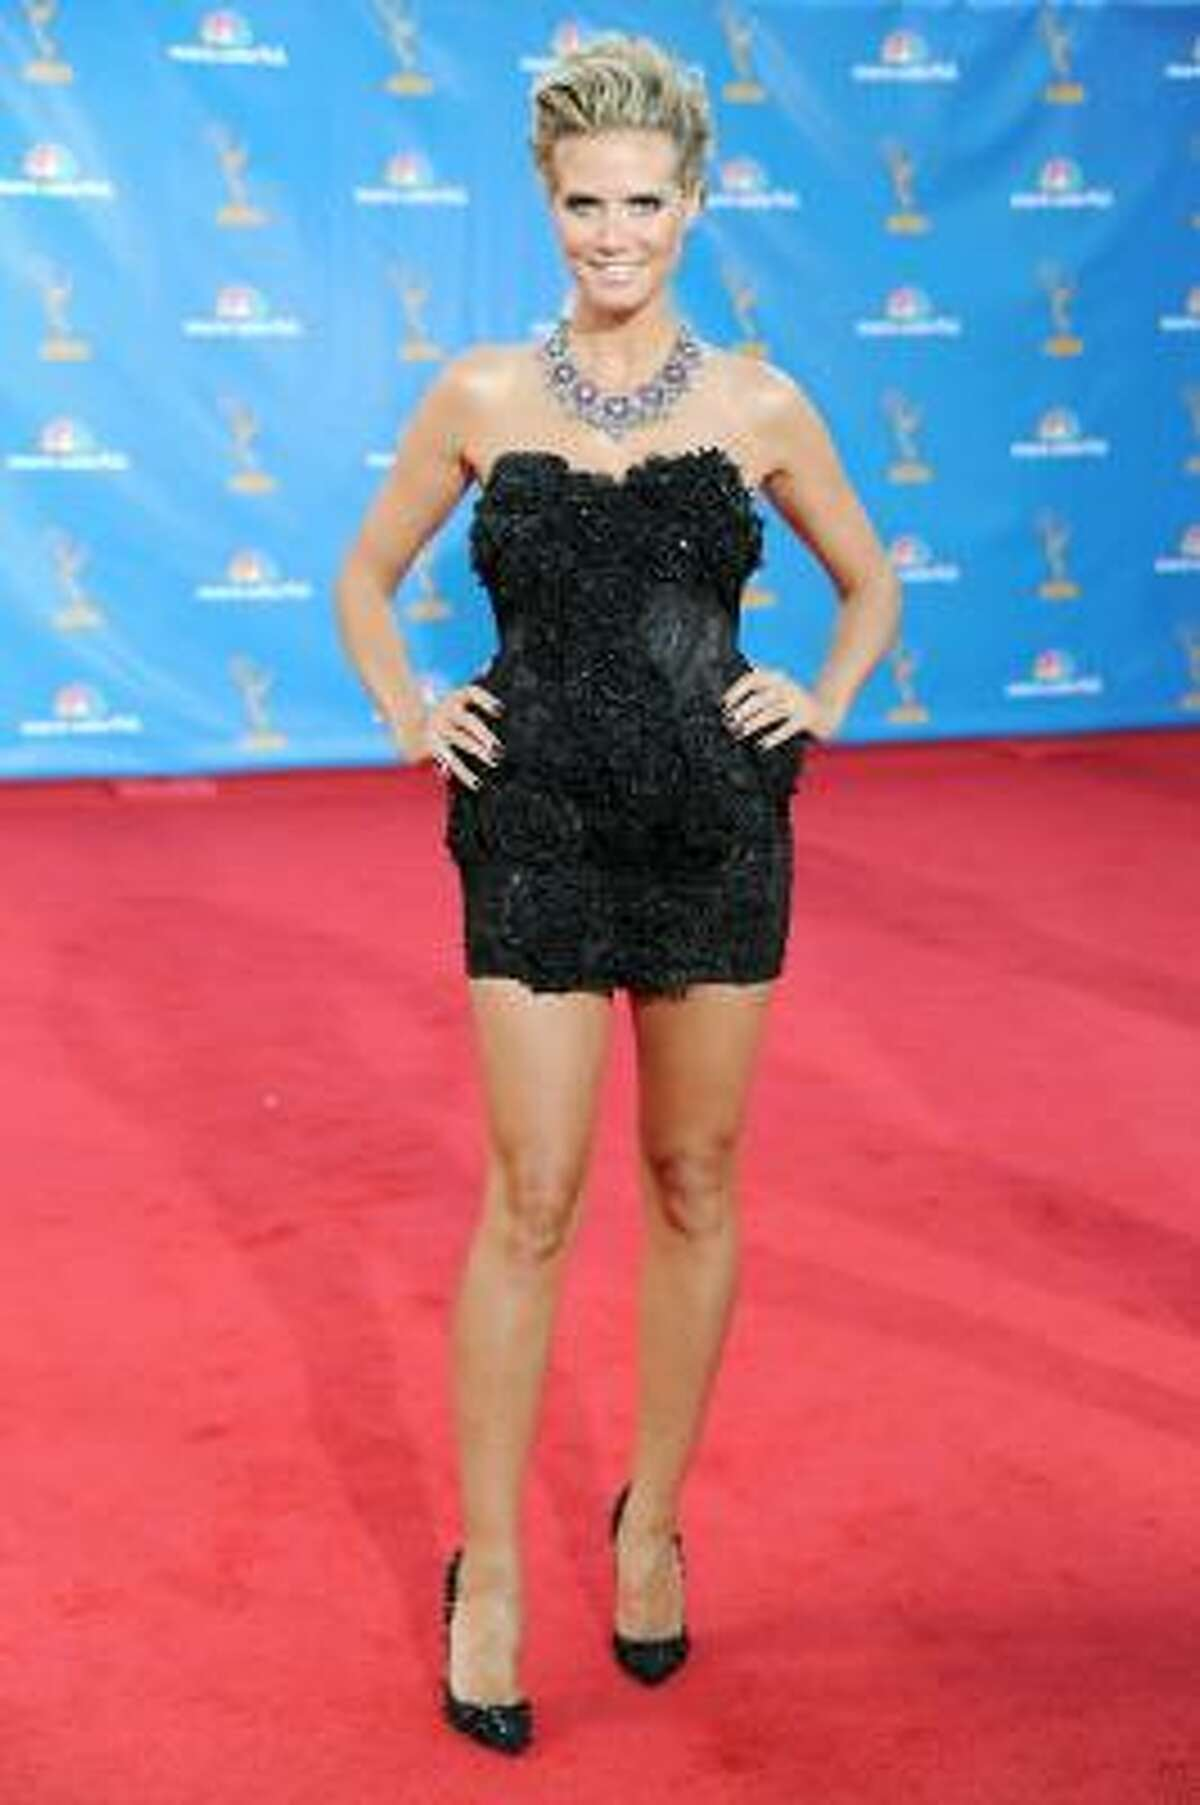 Heidi Klum – Everything's big except the dress.